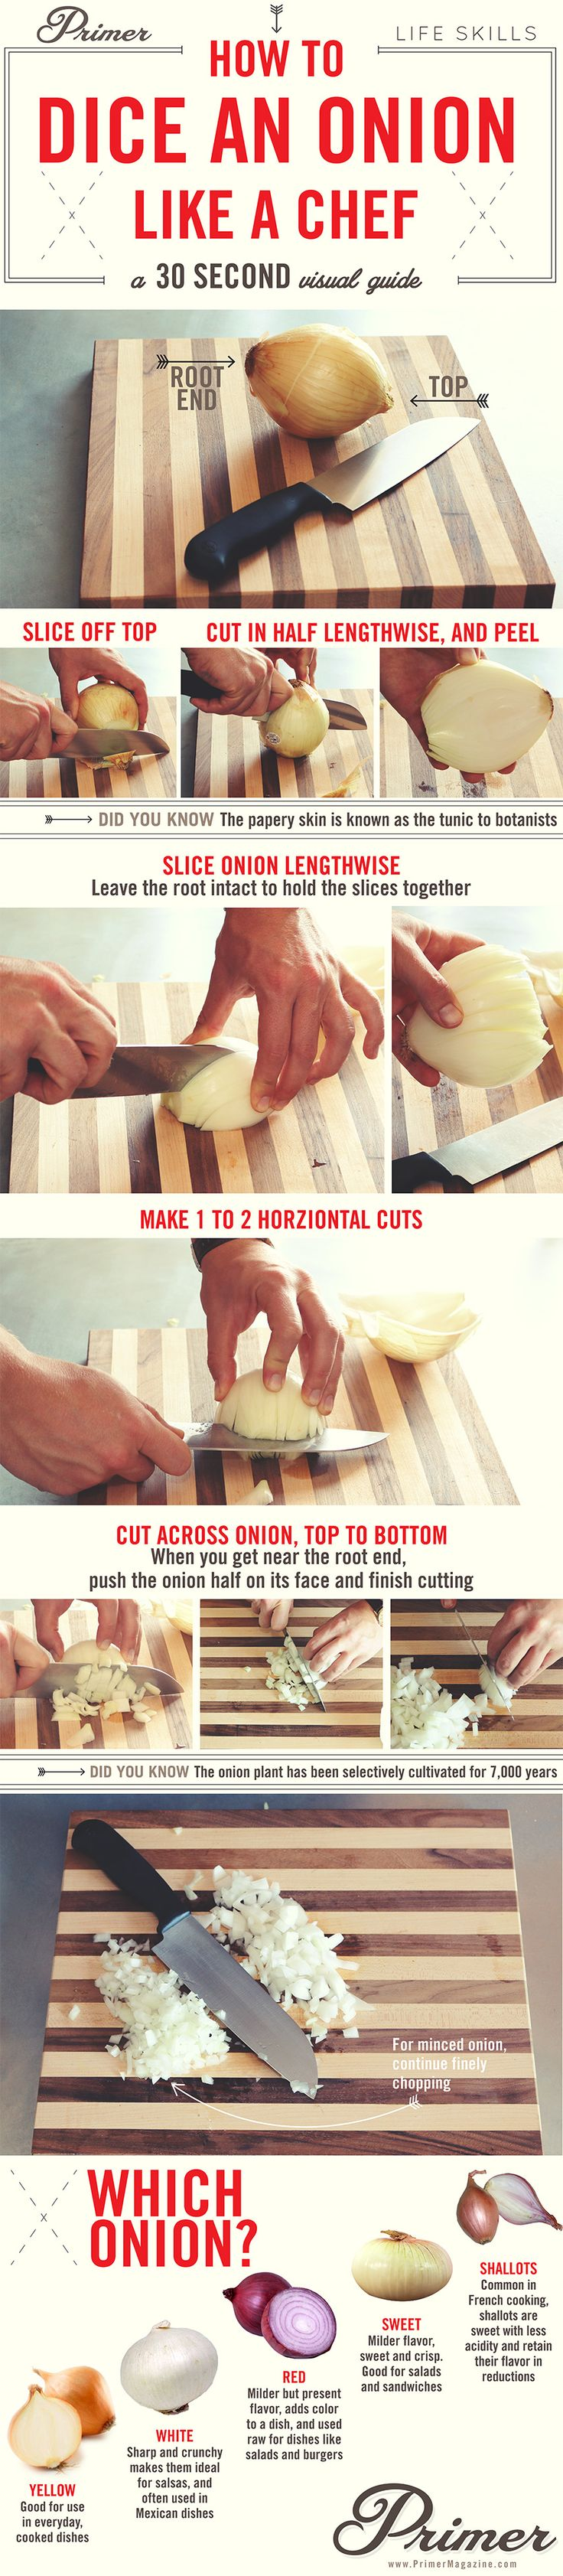 How to dice an onion like a chef